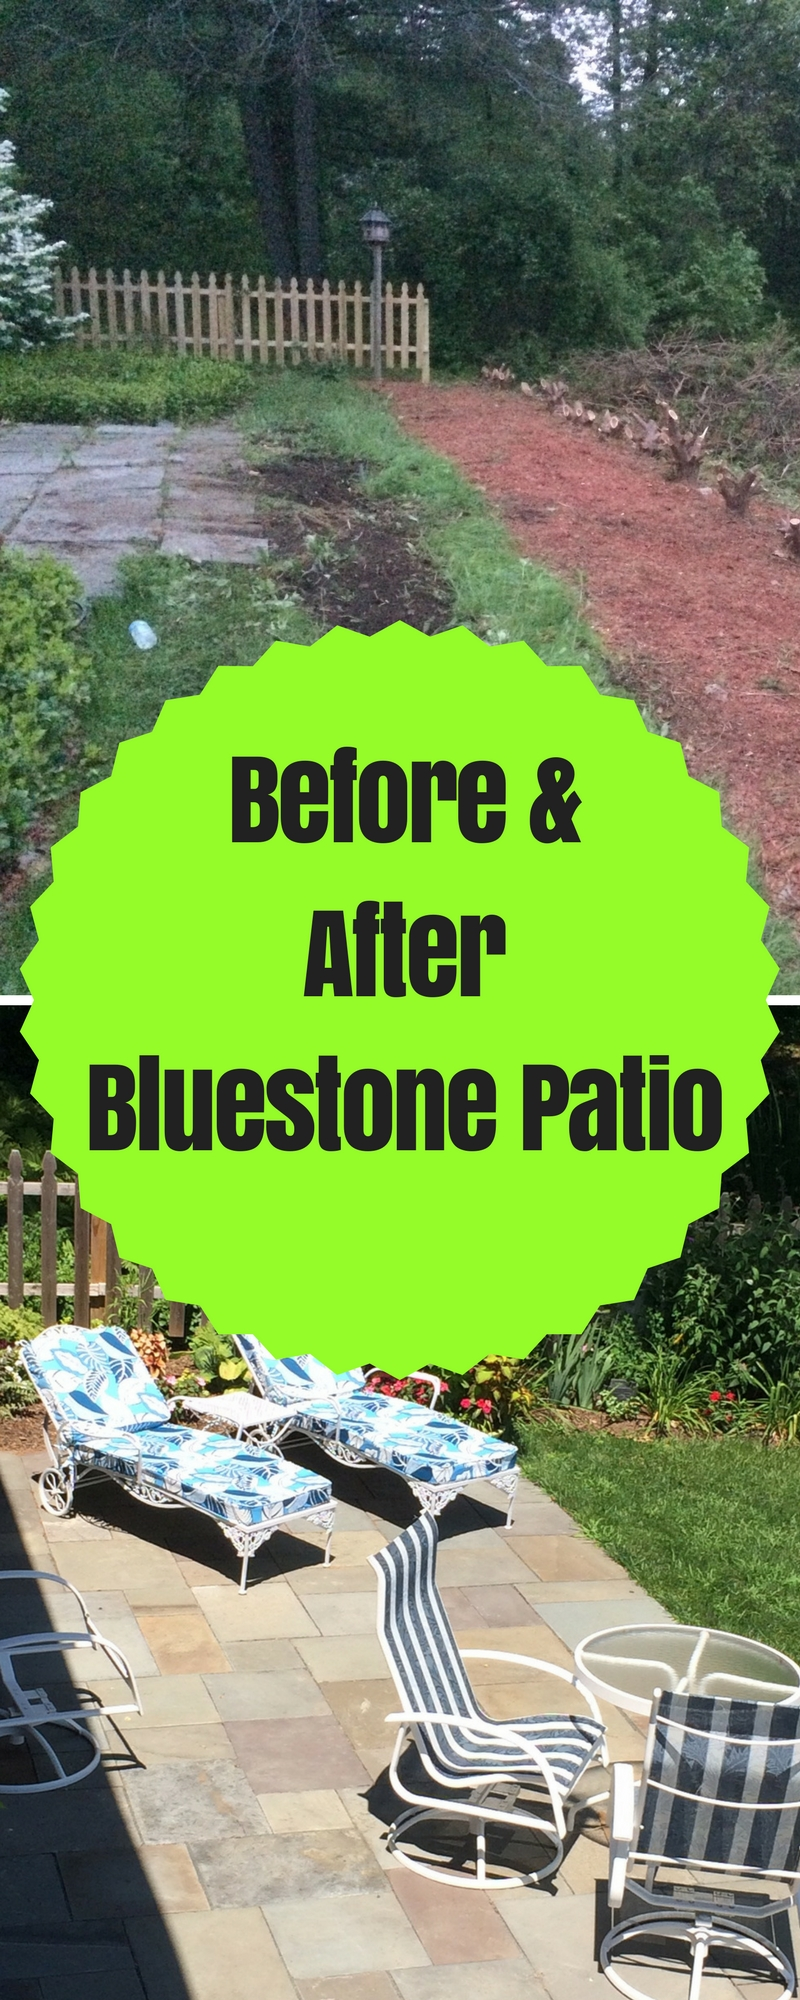 Before and After Bluestone Patio